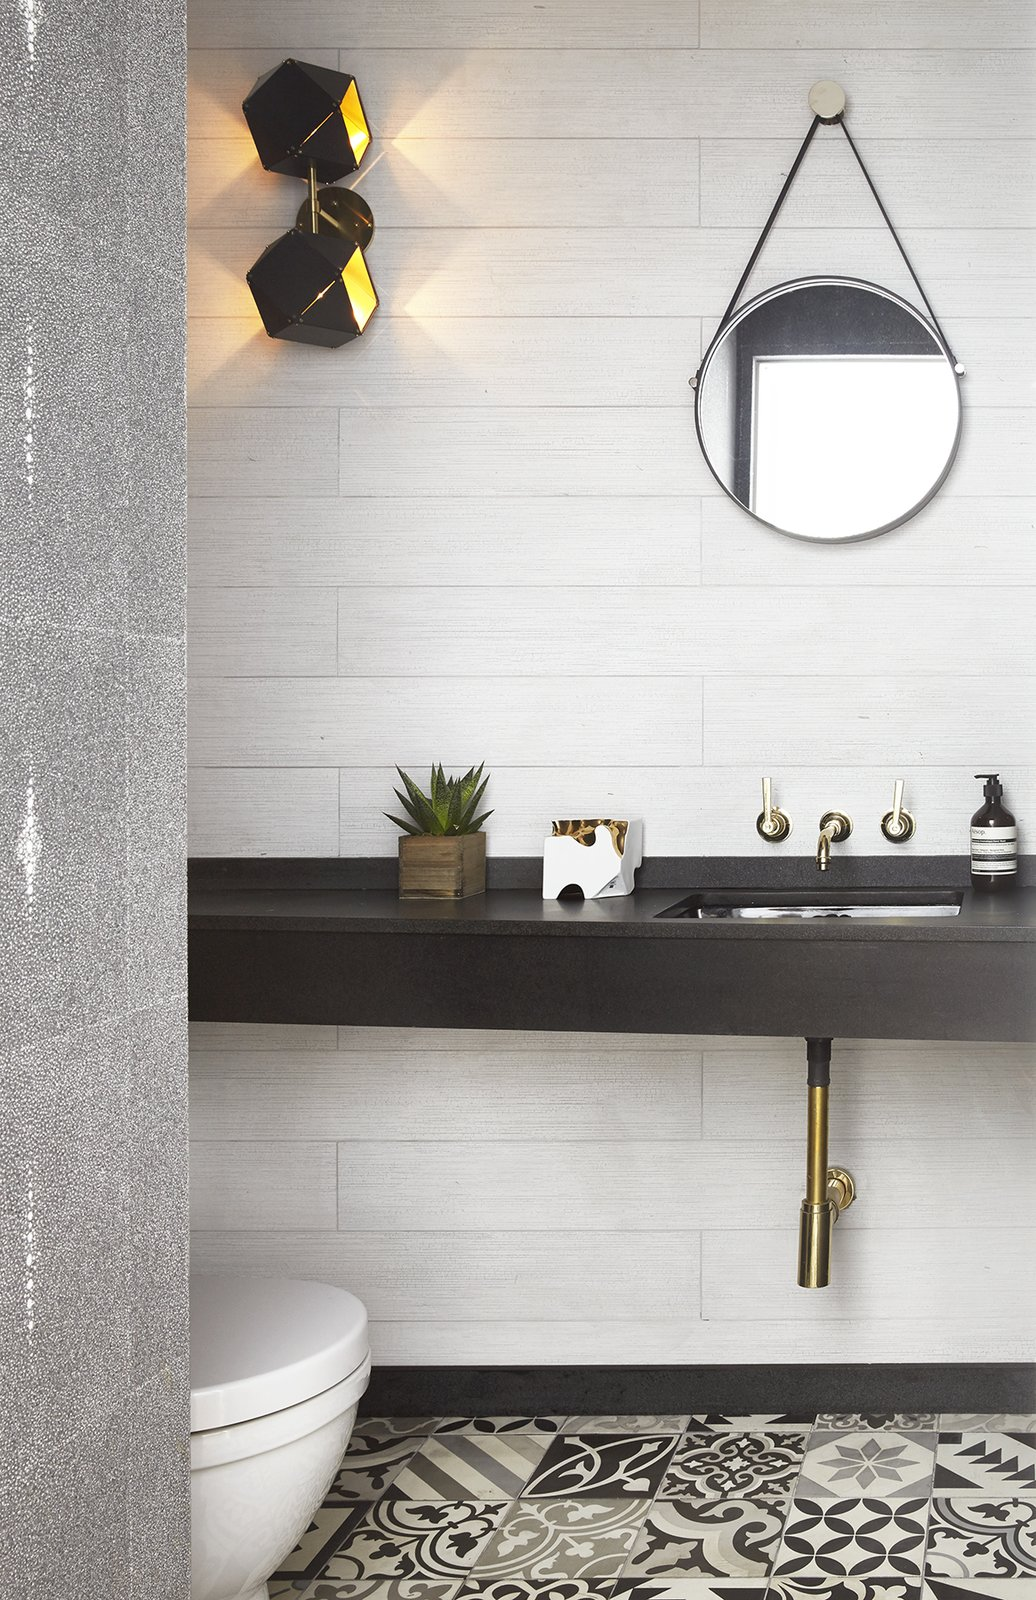 Bath, Ceramic Tile, Wall, One Piece, Drop In, and Stone  Best Bath Wall Ceramic Tile Photos from Renovated SoHo Duplex